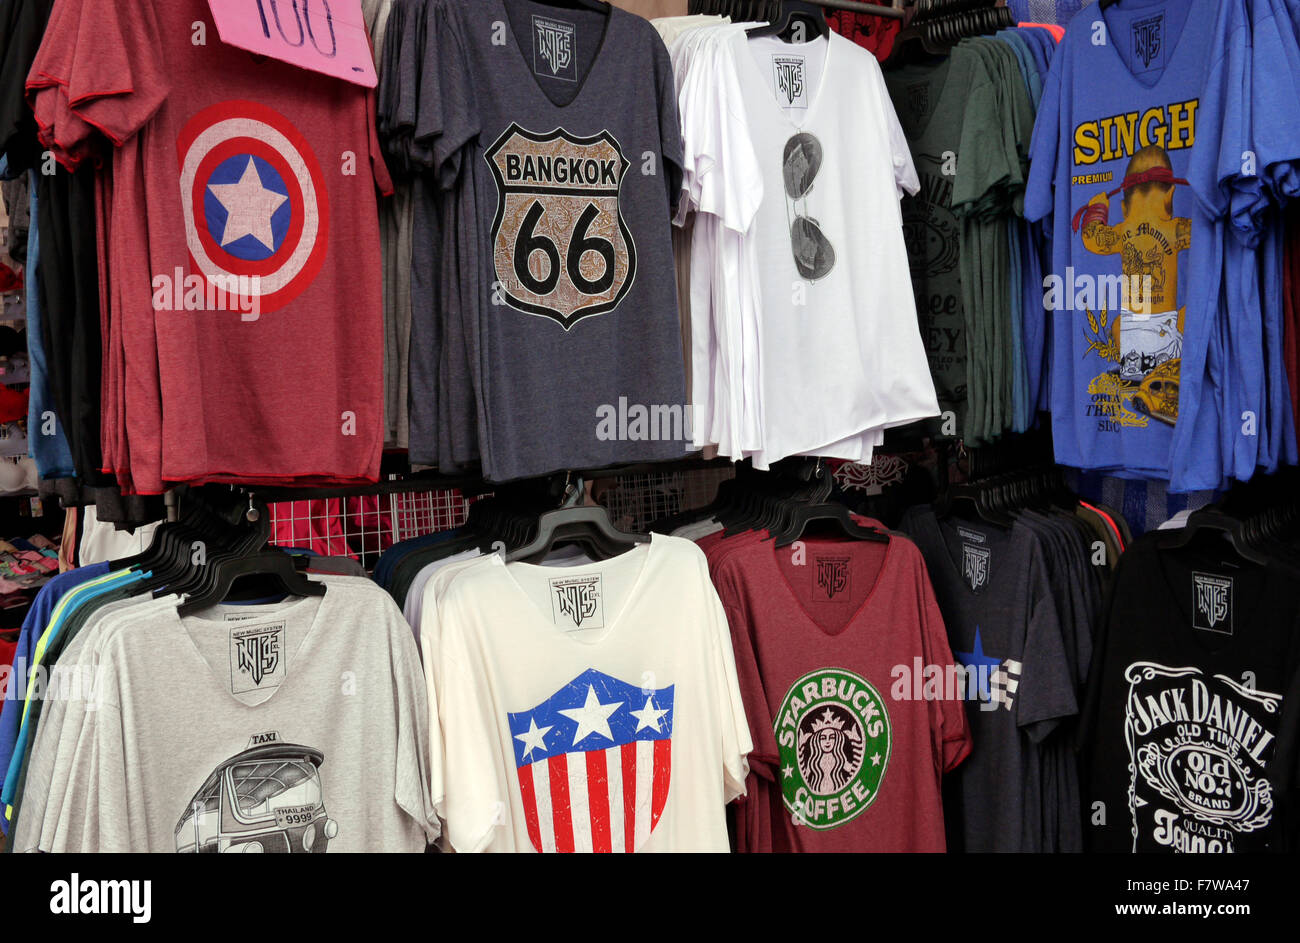 T Shirts for sale on a market stall in Thailand Stock Photo ...